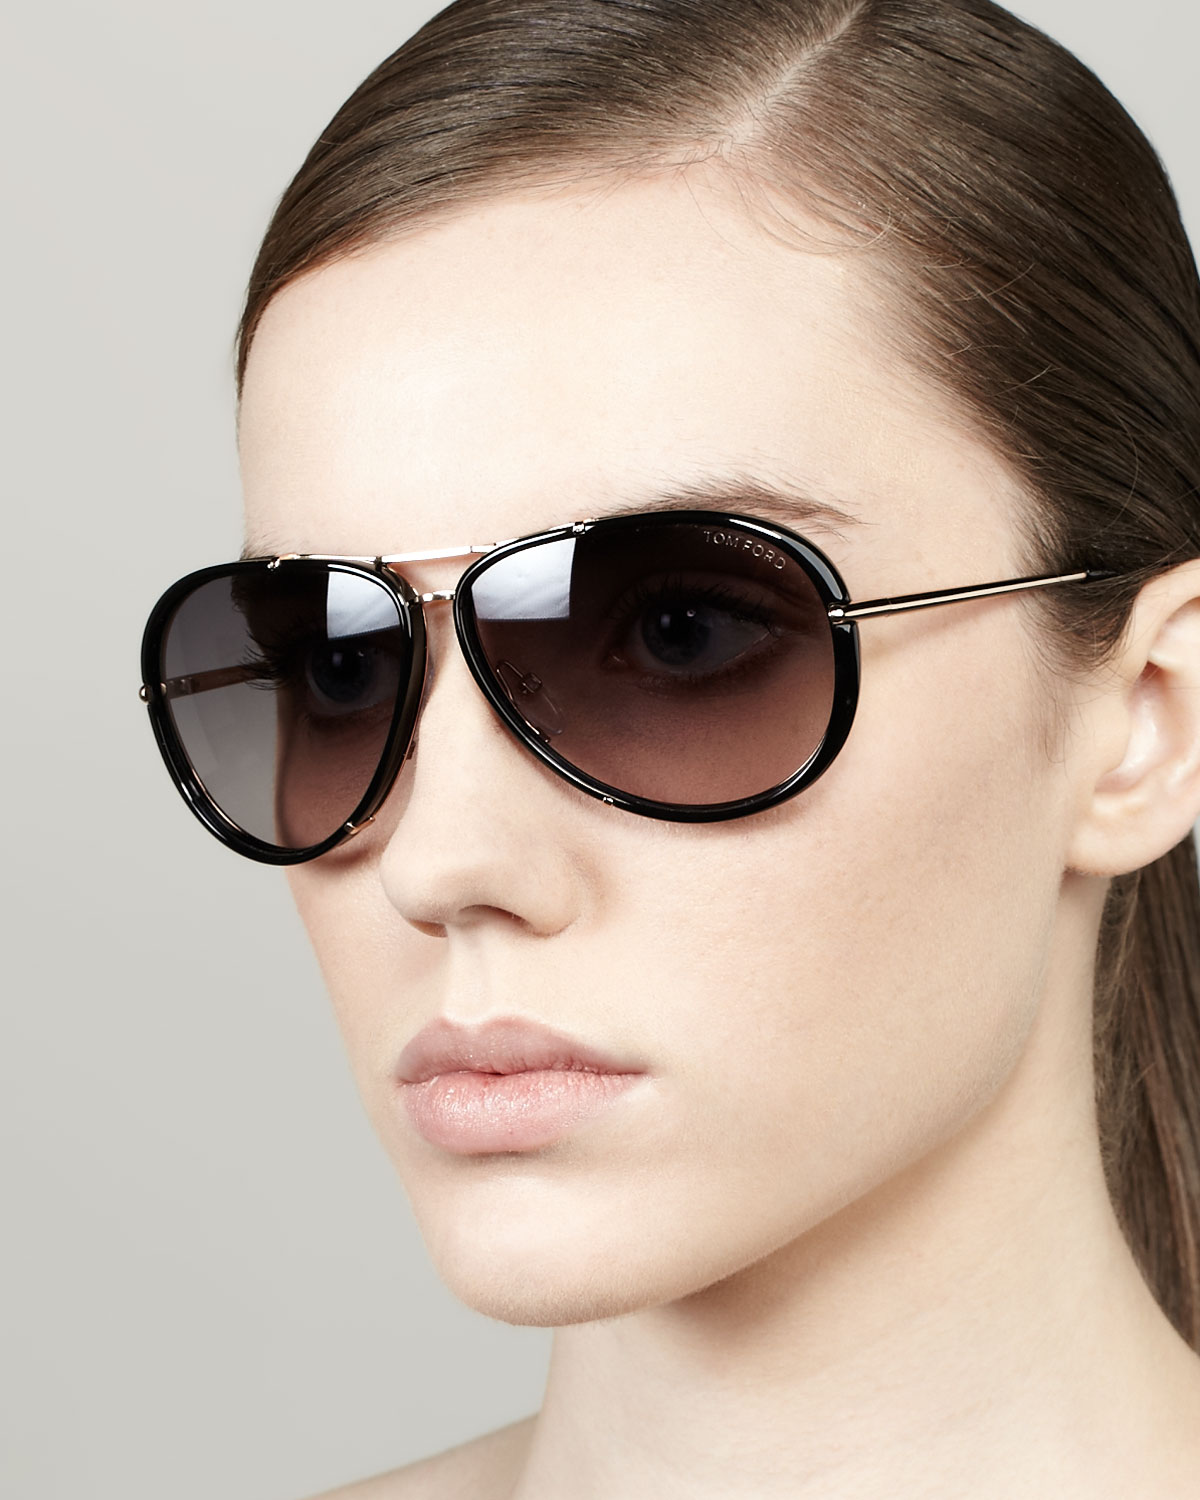 5ab5a409c43 Tom Ford Cyrille Aviator Sunglasses Amazon - Bitterroot Public Library